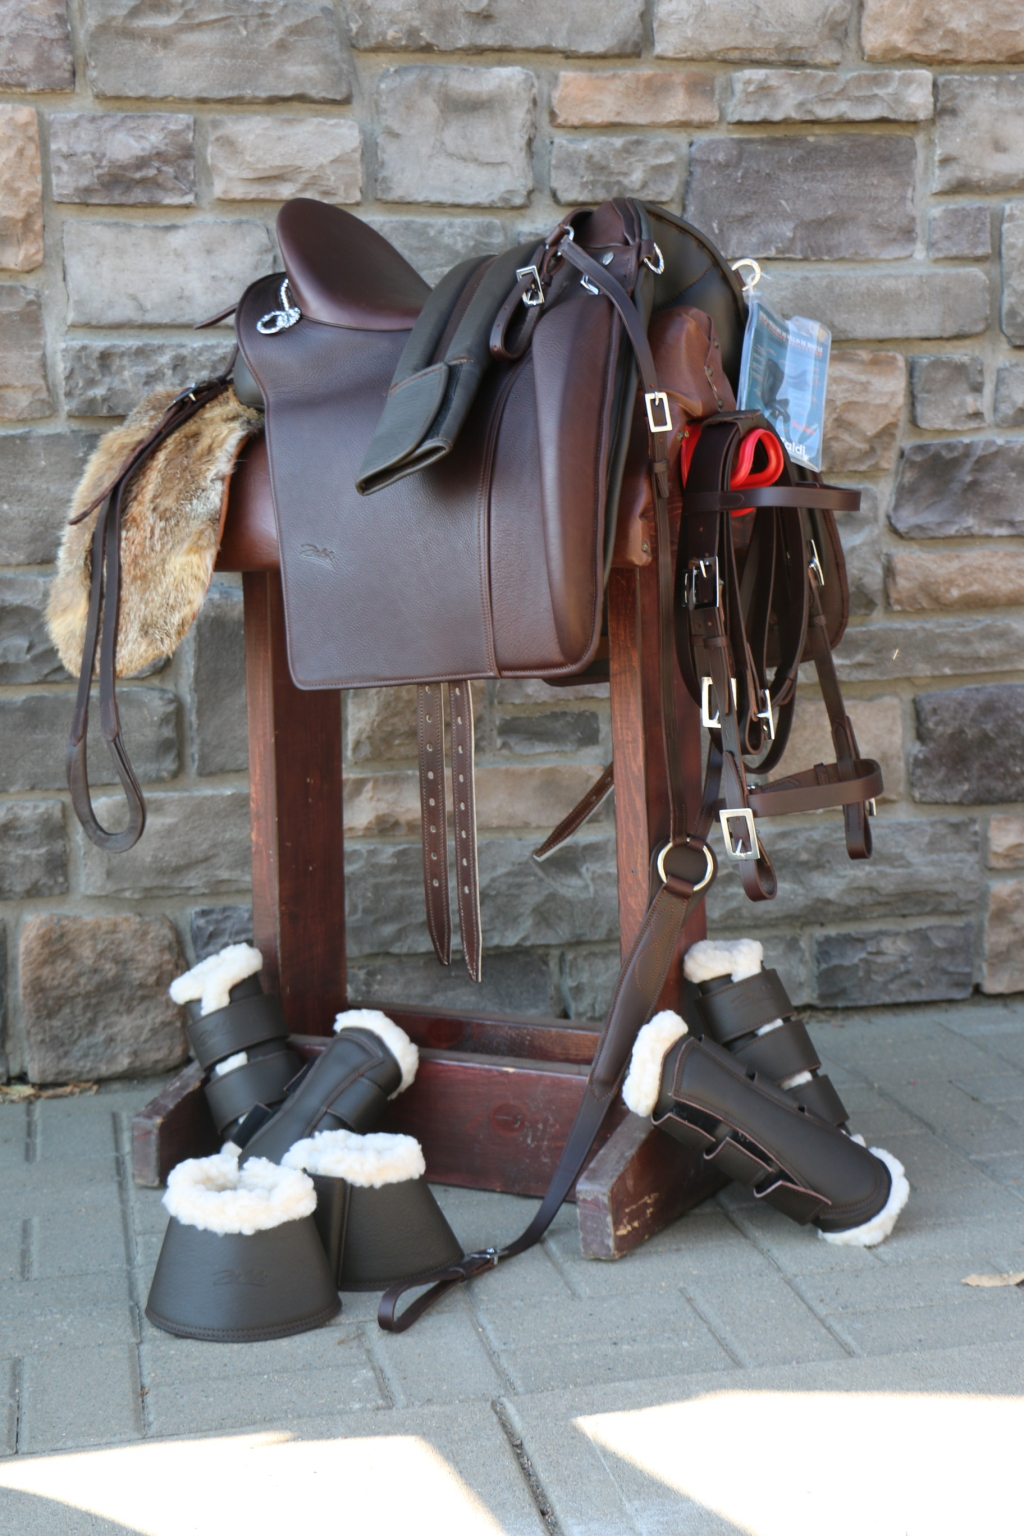 IMPORTED BAROQUE, WORKING EQUITATION, HANDCRAFTED AND CUSTOM TACK